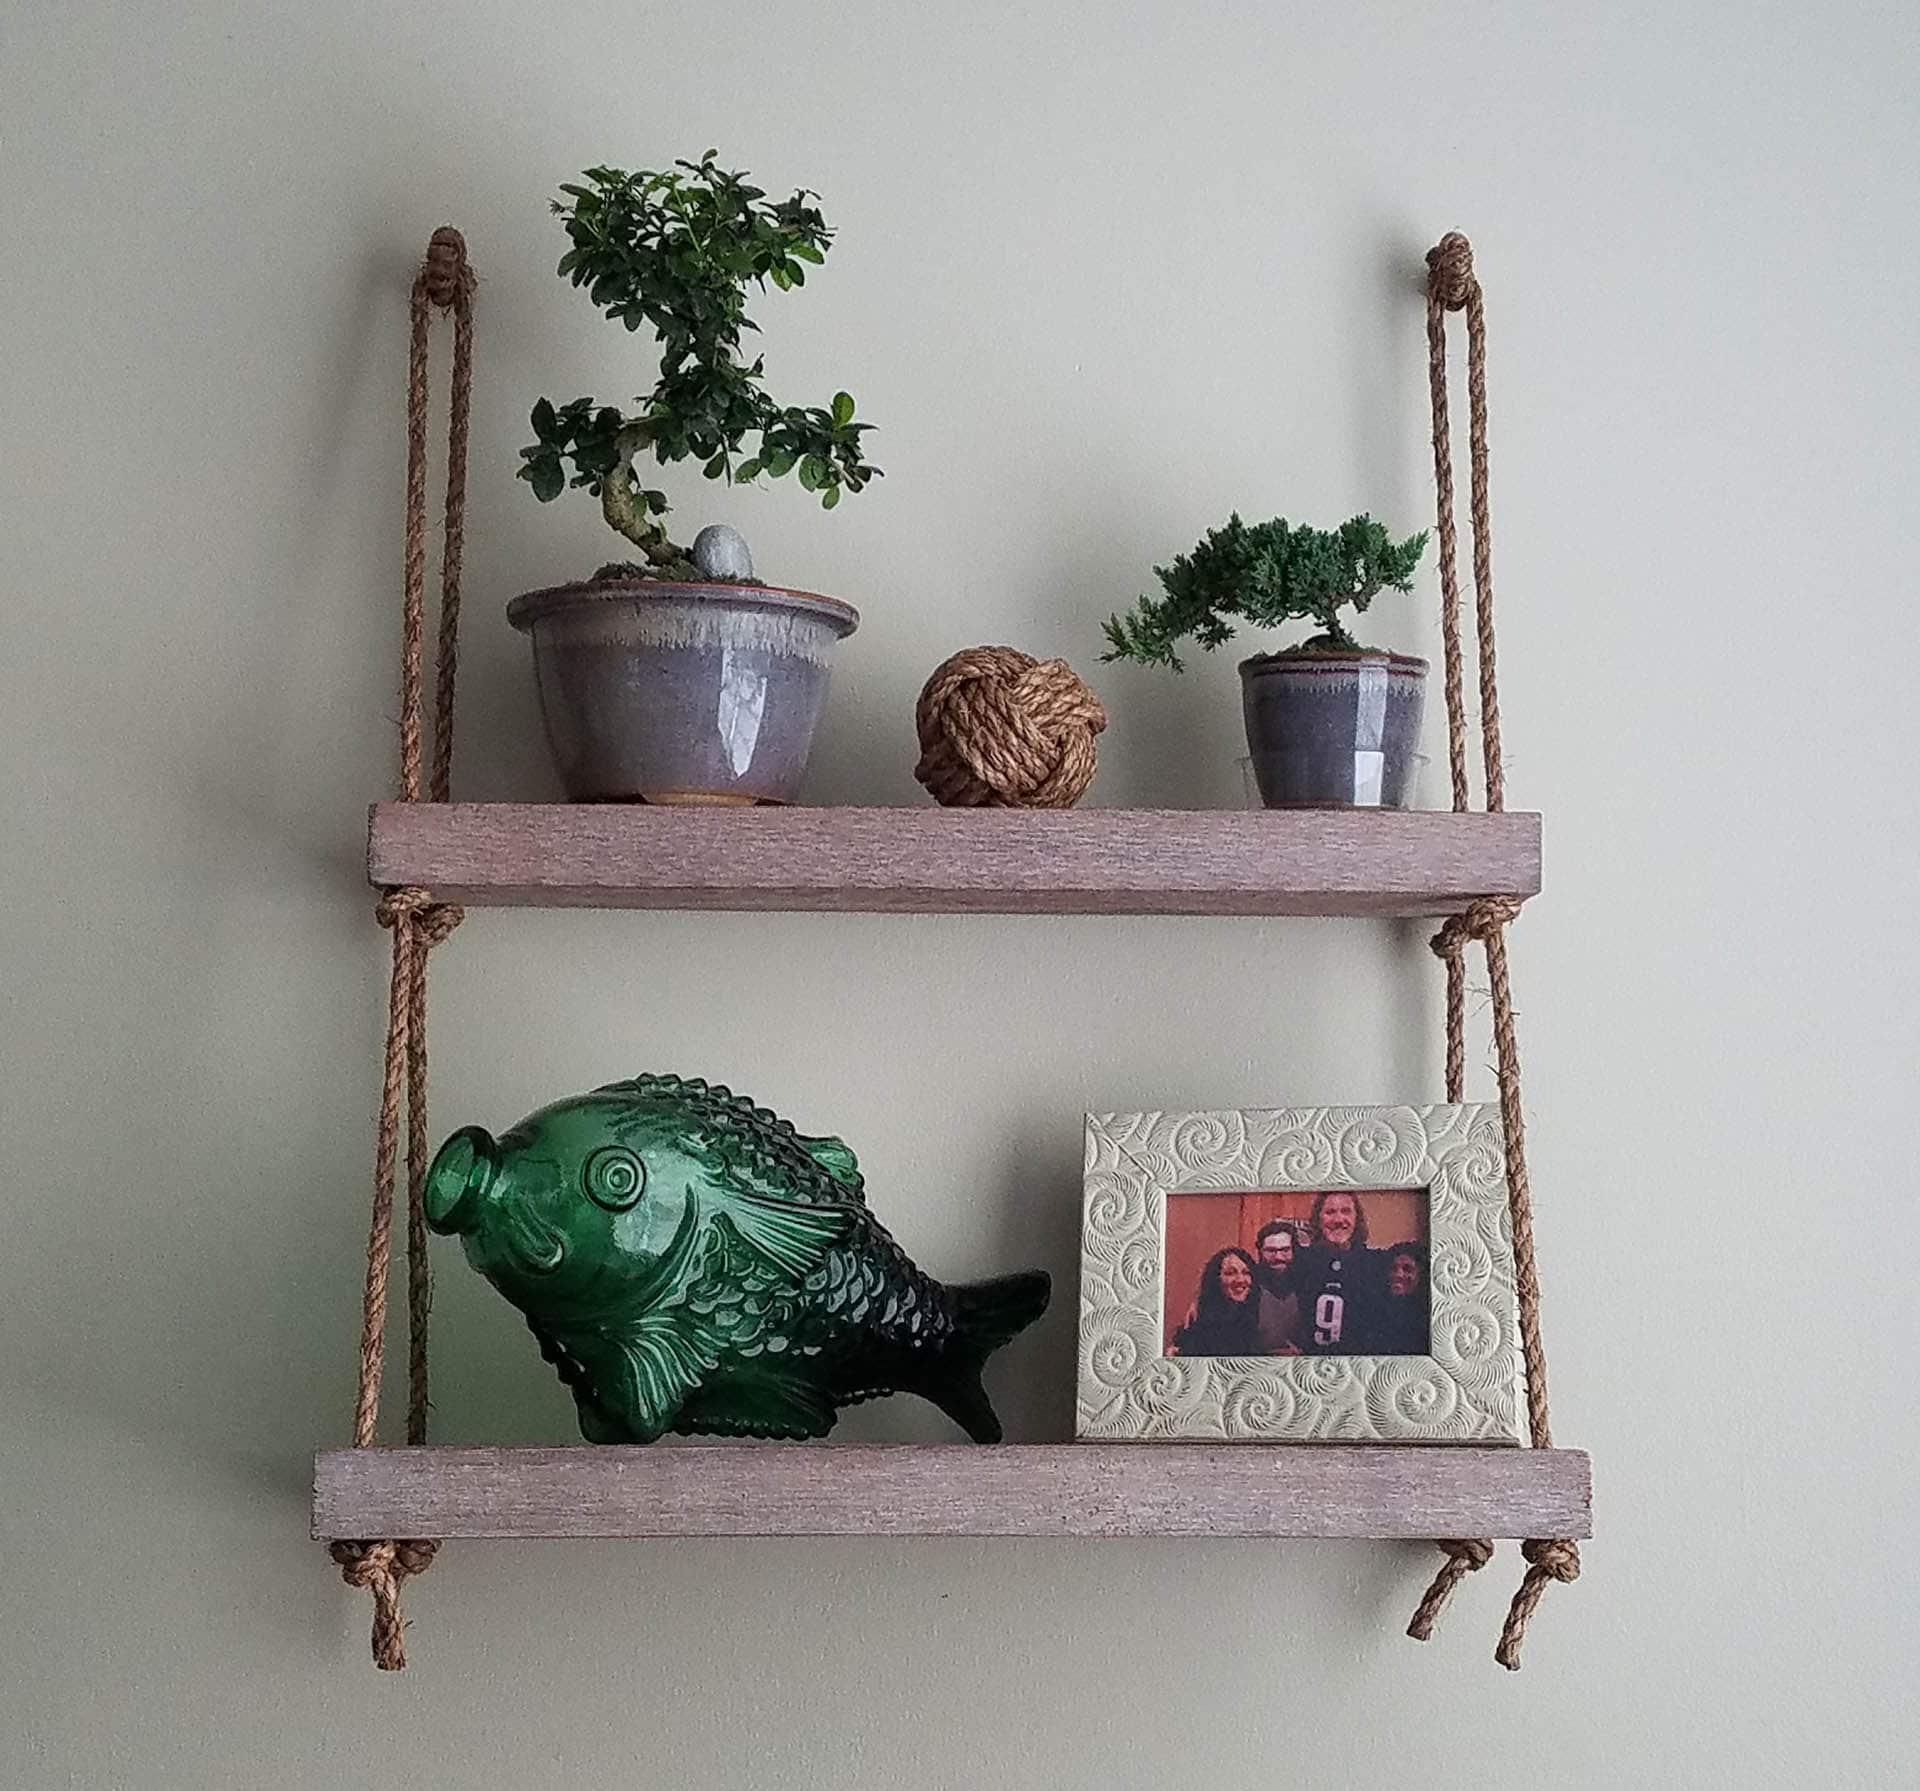 Easy DIY Hanging Rope Shelf via @mermaidsandmojitos